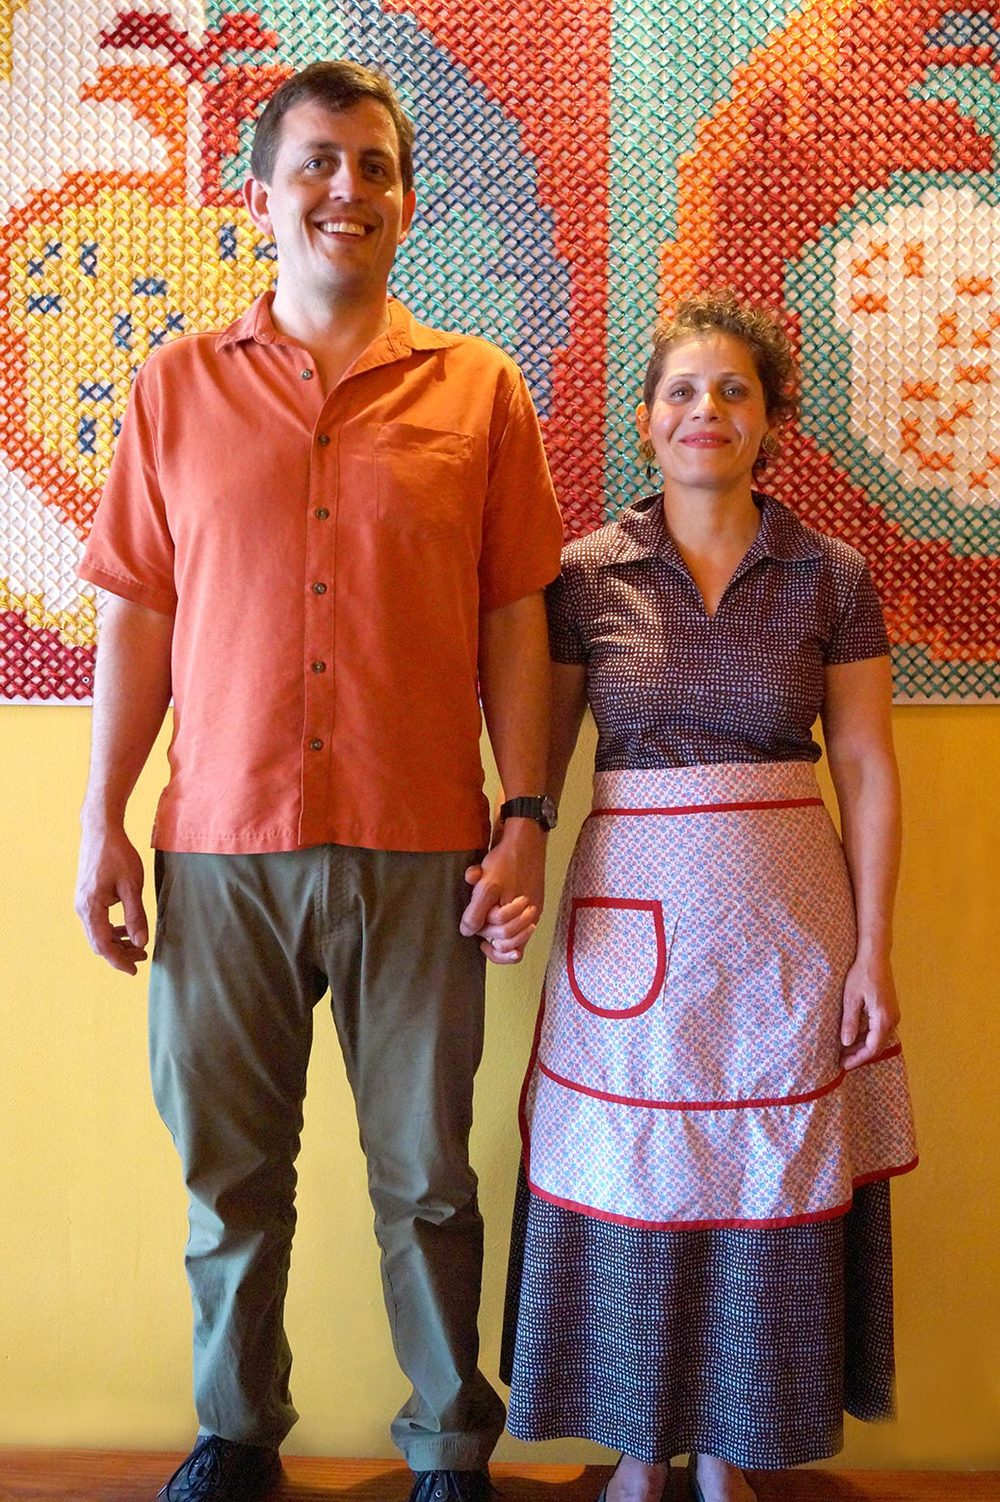 Robert Gott and Mica Talmor-Gott, owners/chefs